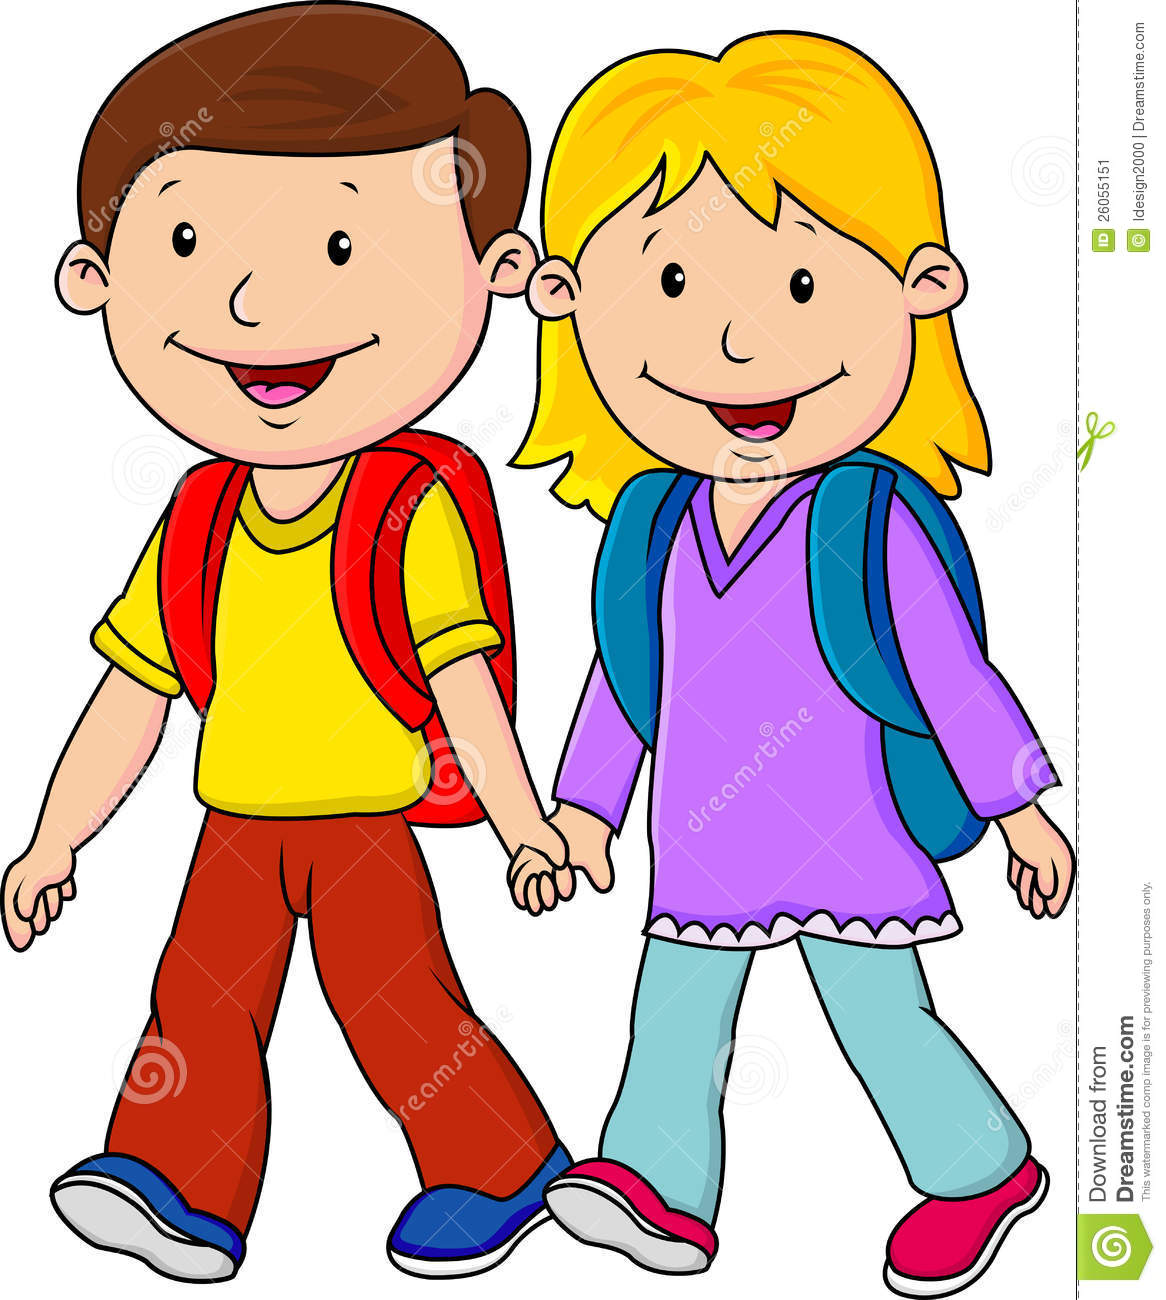 Child going to school clipart 10 » Clipart Station.